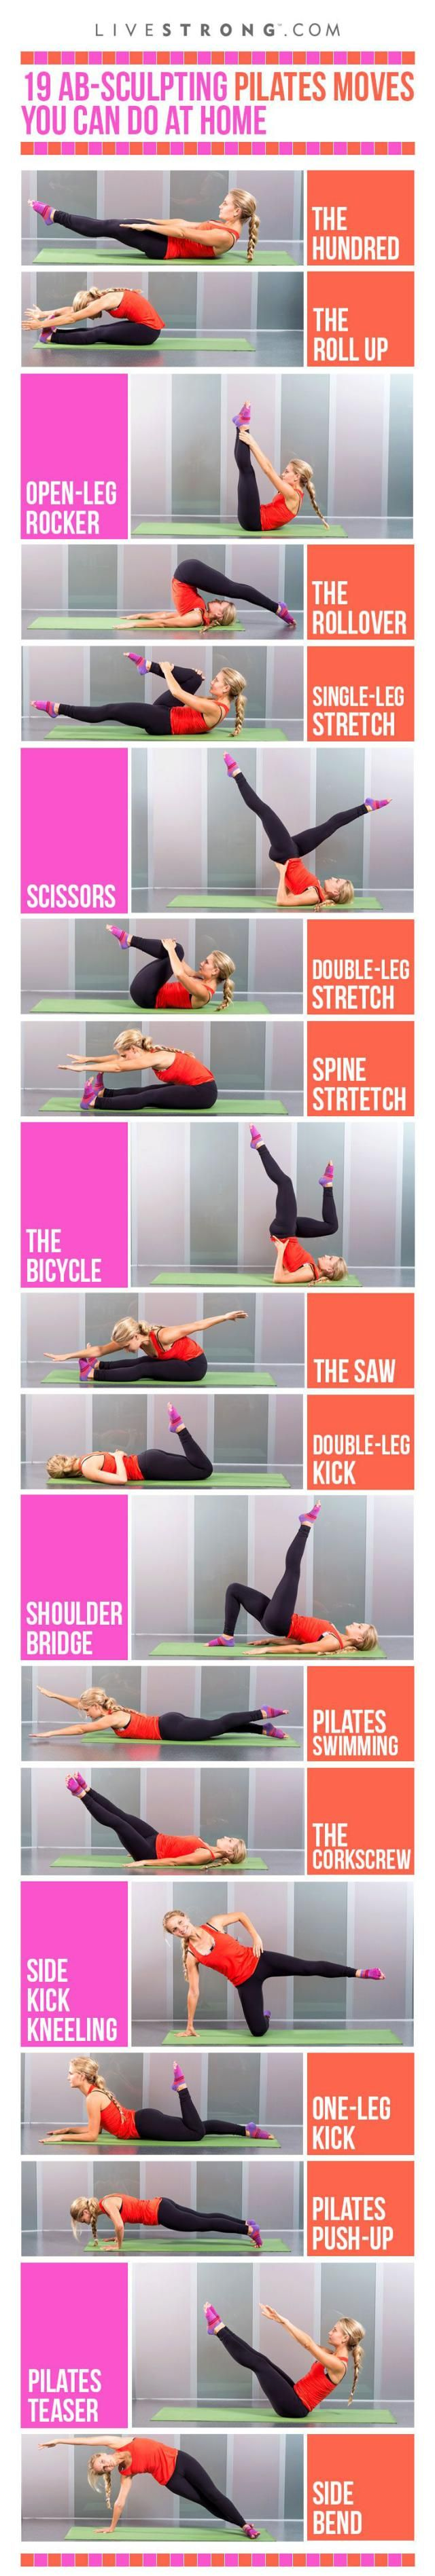 Use These Pinterest Workouts for Your Next Home-Based Routine: Pilates Workout